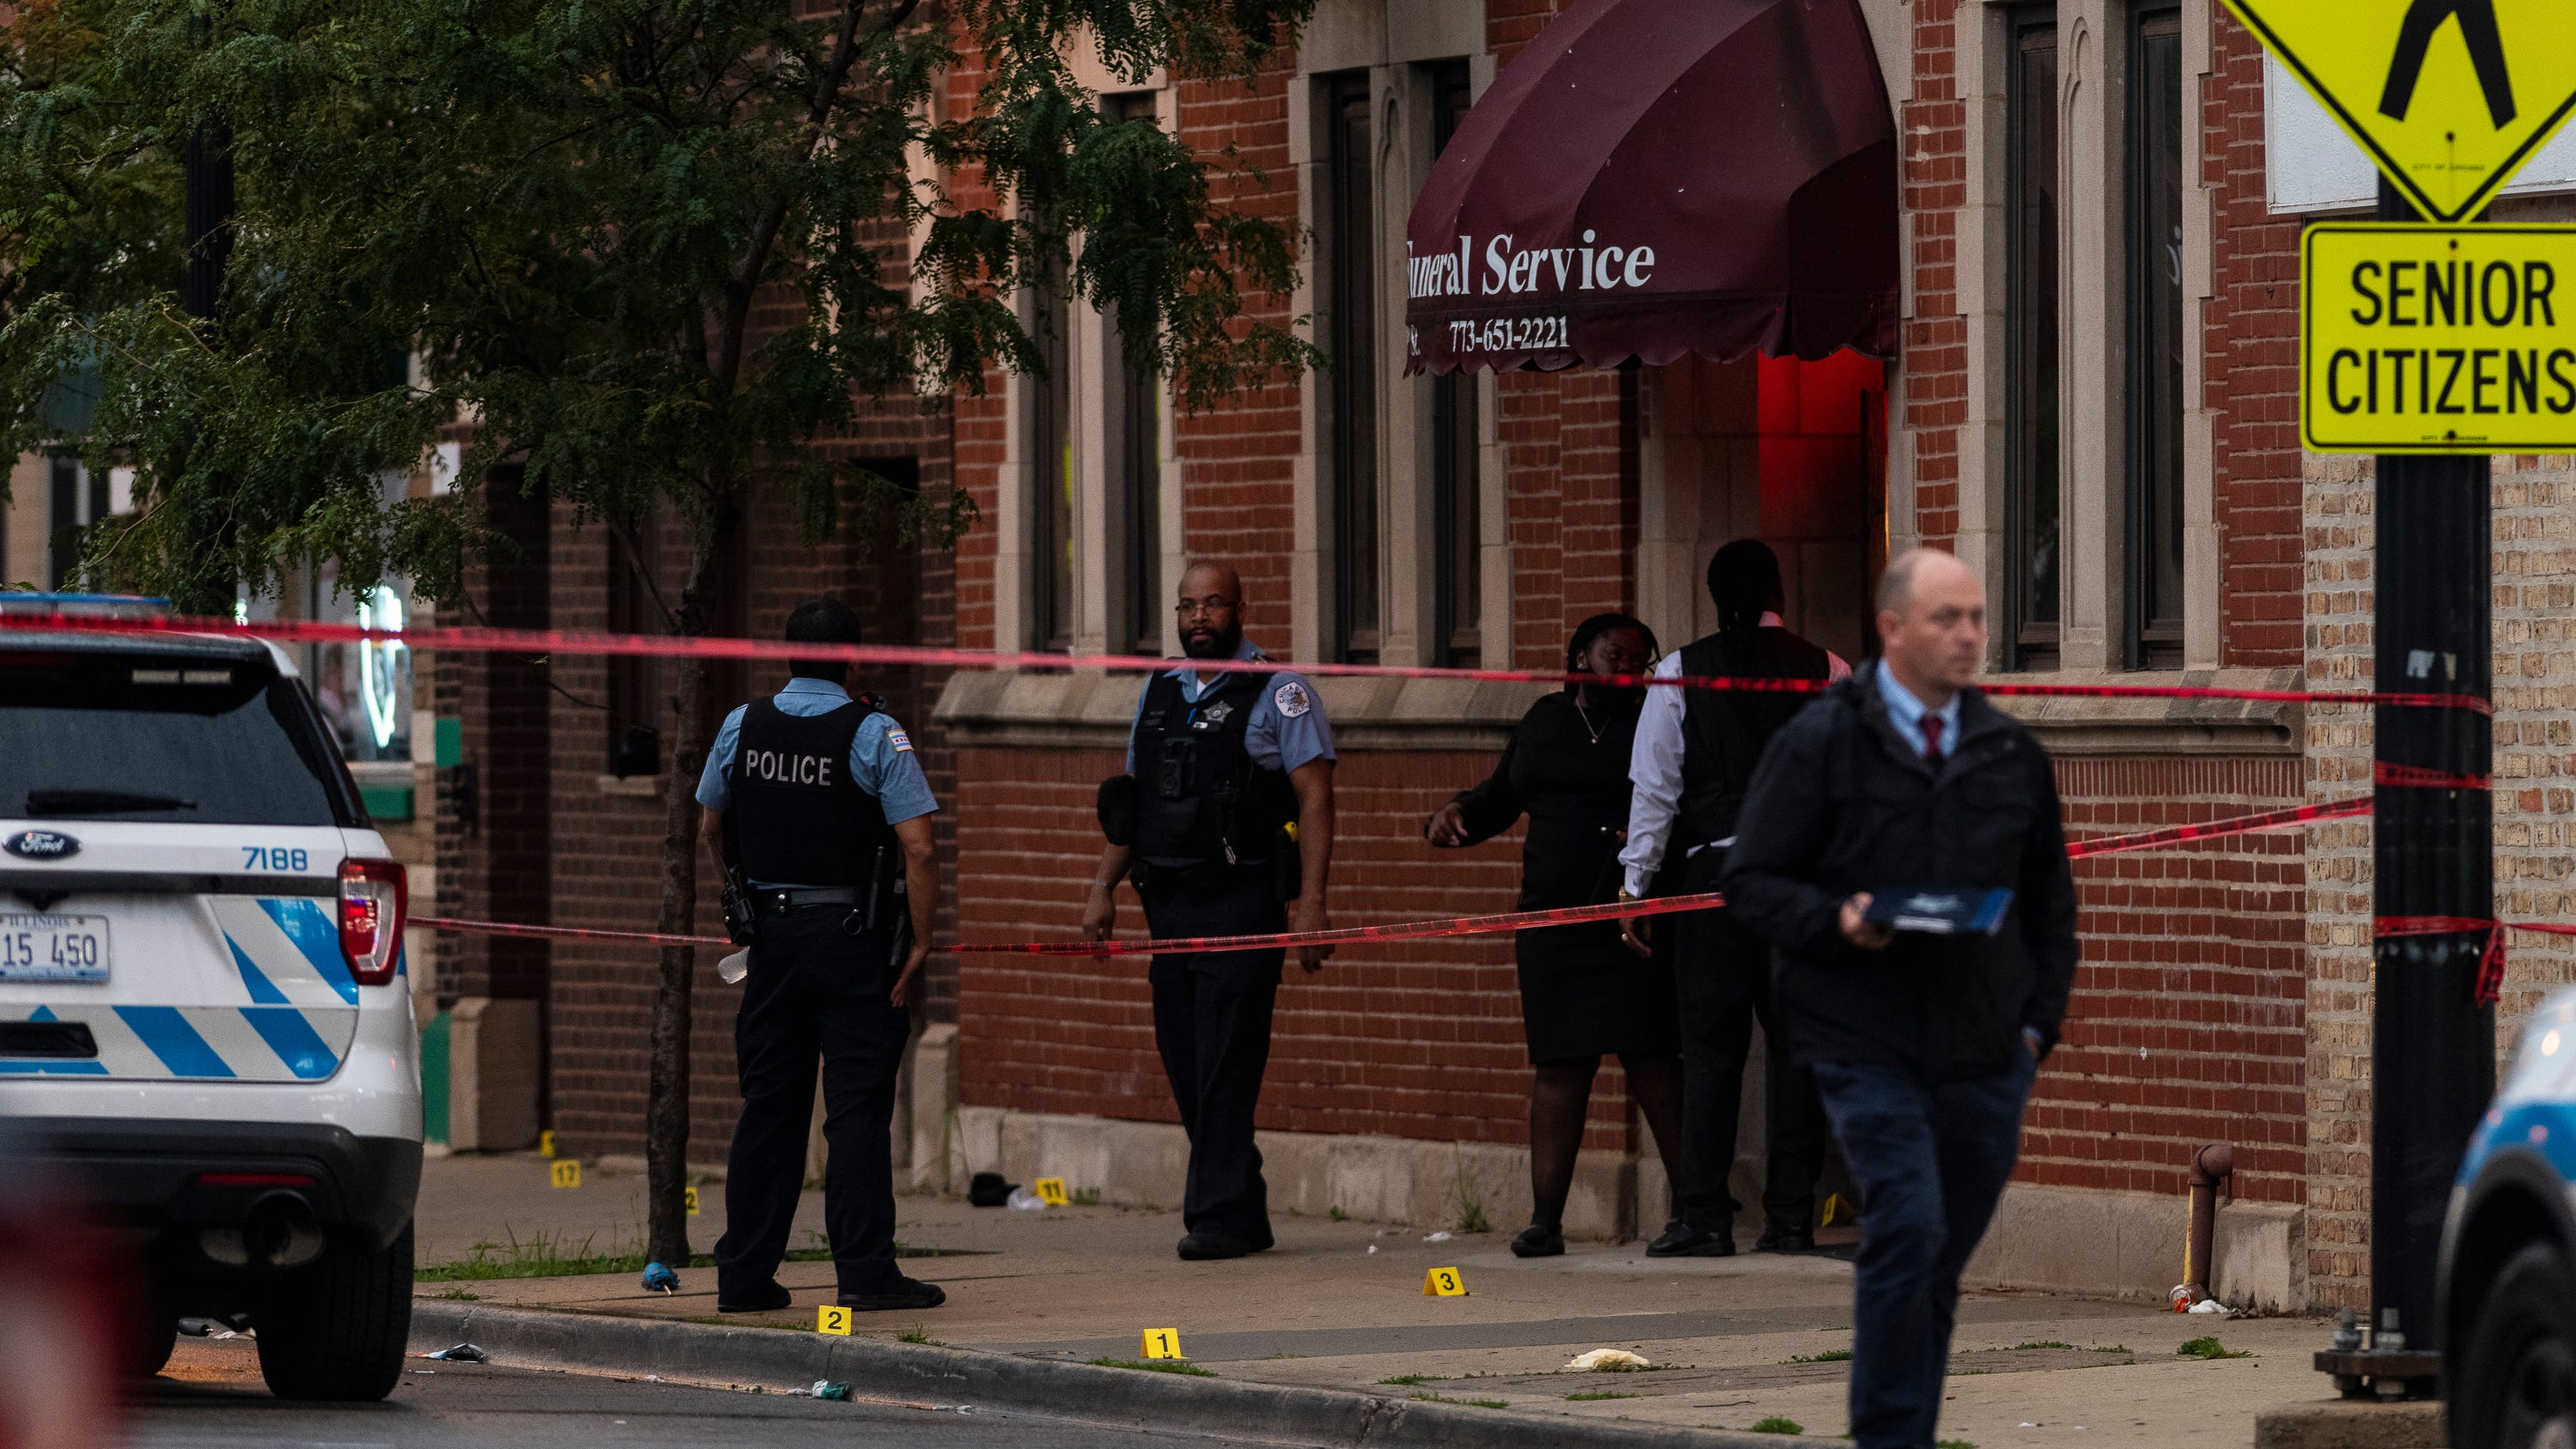 Police: 14 hospitalized after drive-by shoot-out at Chicago funeral, 1 'person of interest' in custody